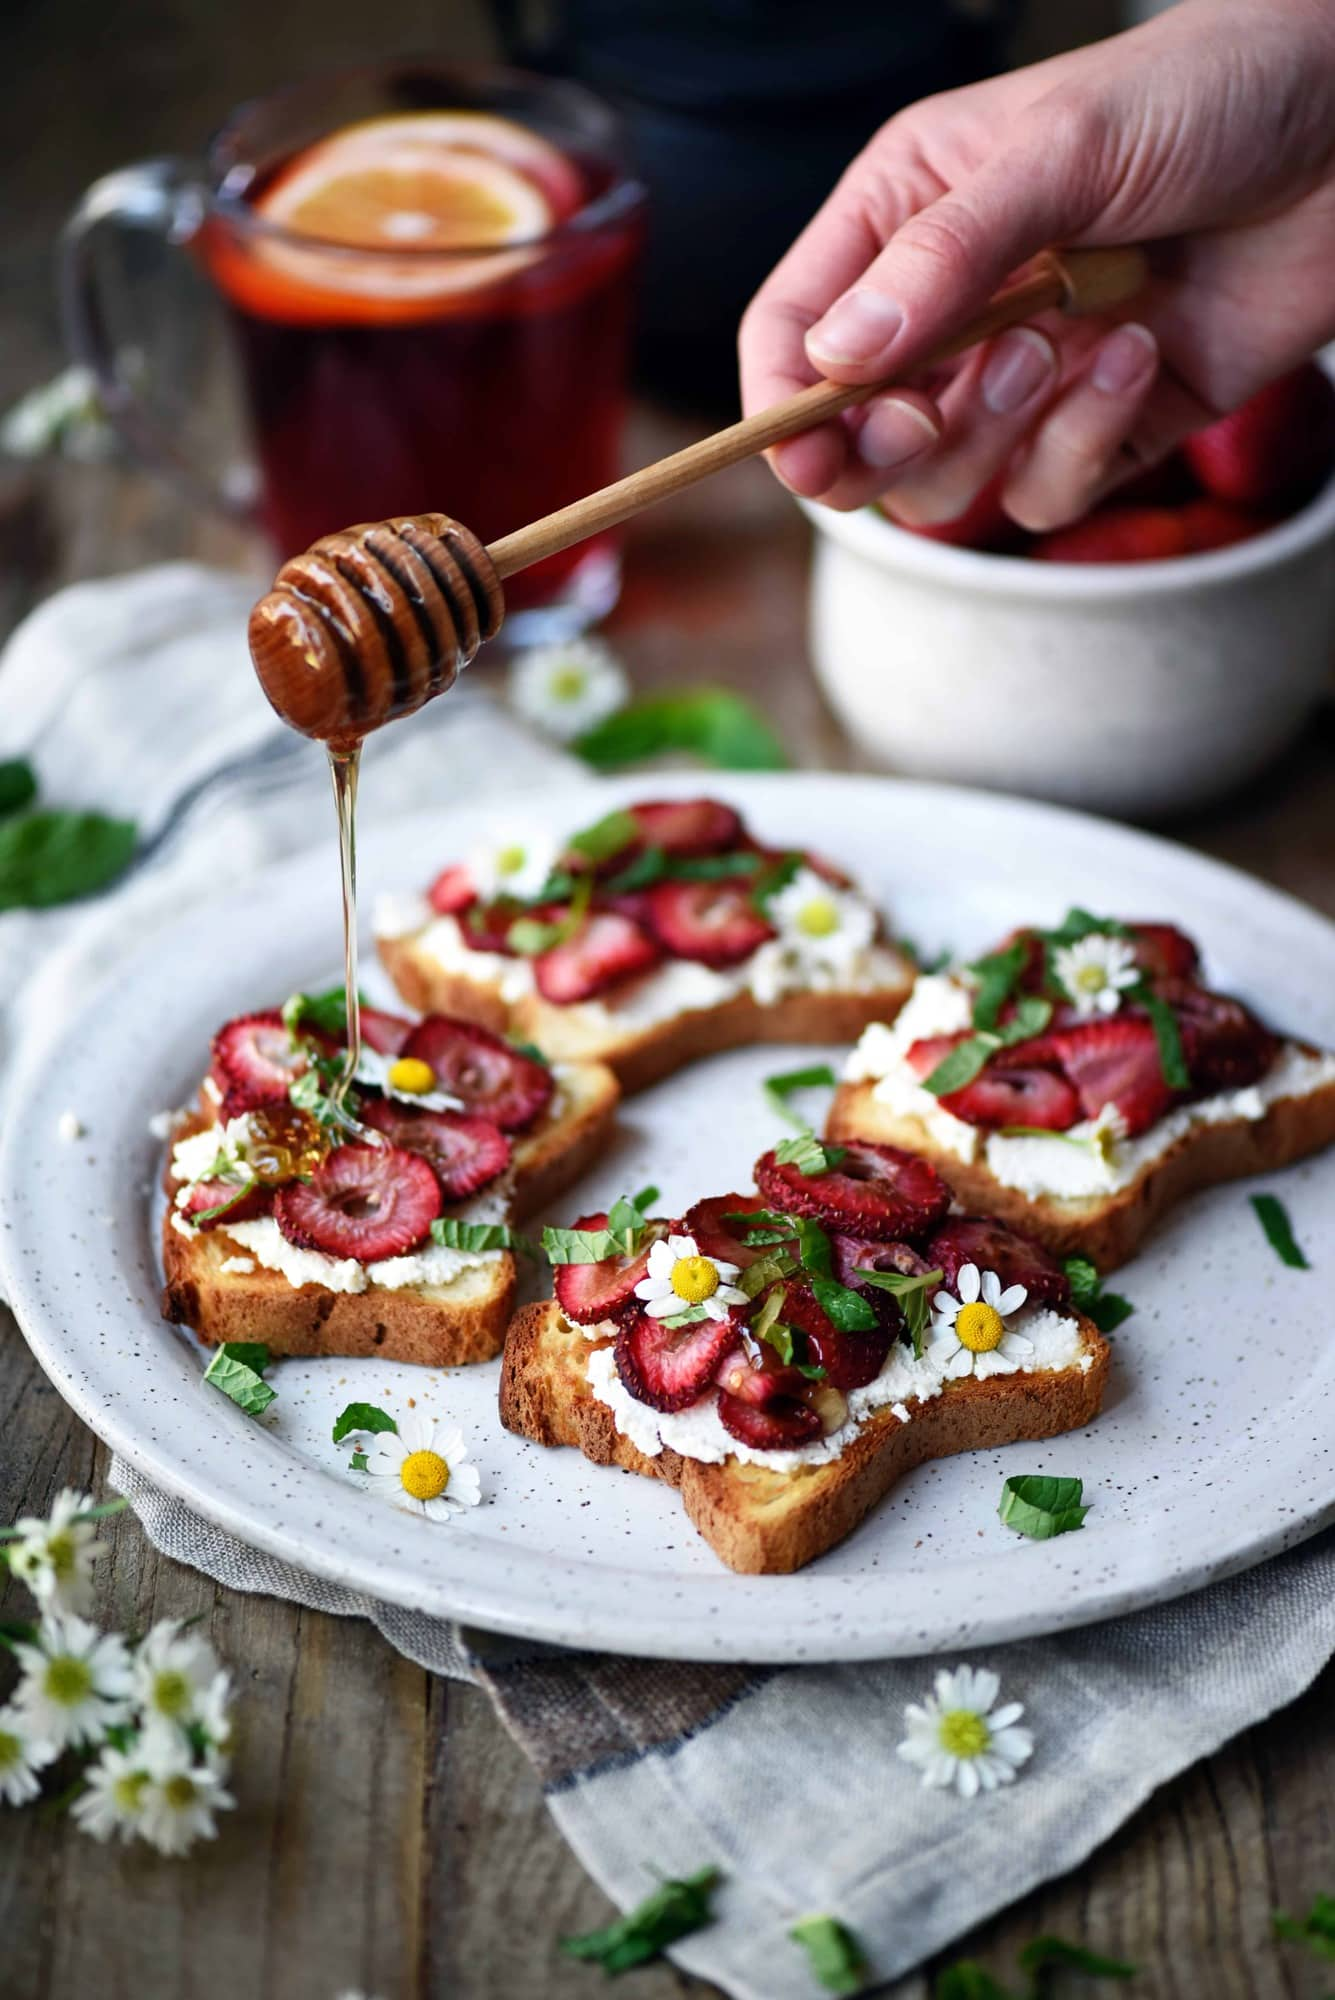 Drizzling honey onto toast topped with ricotta and roasted strawberries